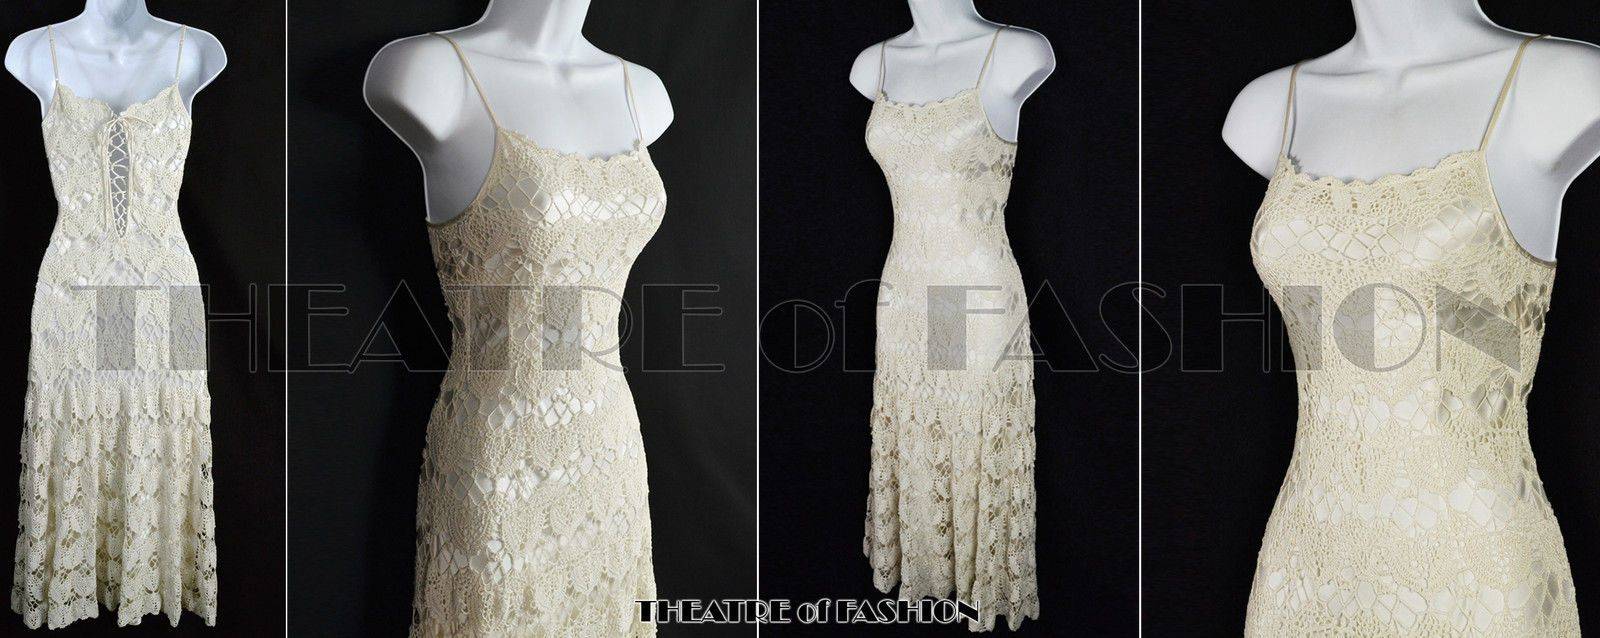 Vintage lace dress wedding crochet corset silk s boho s